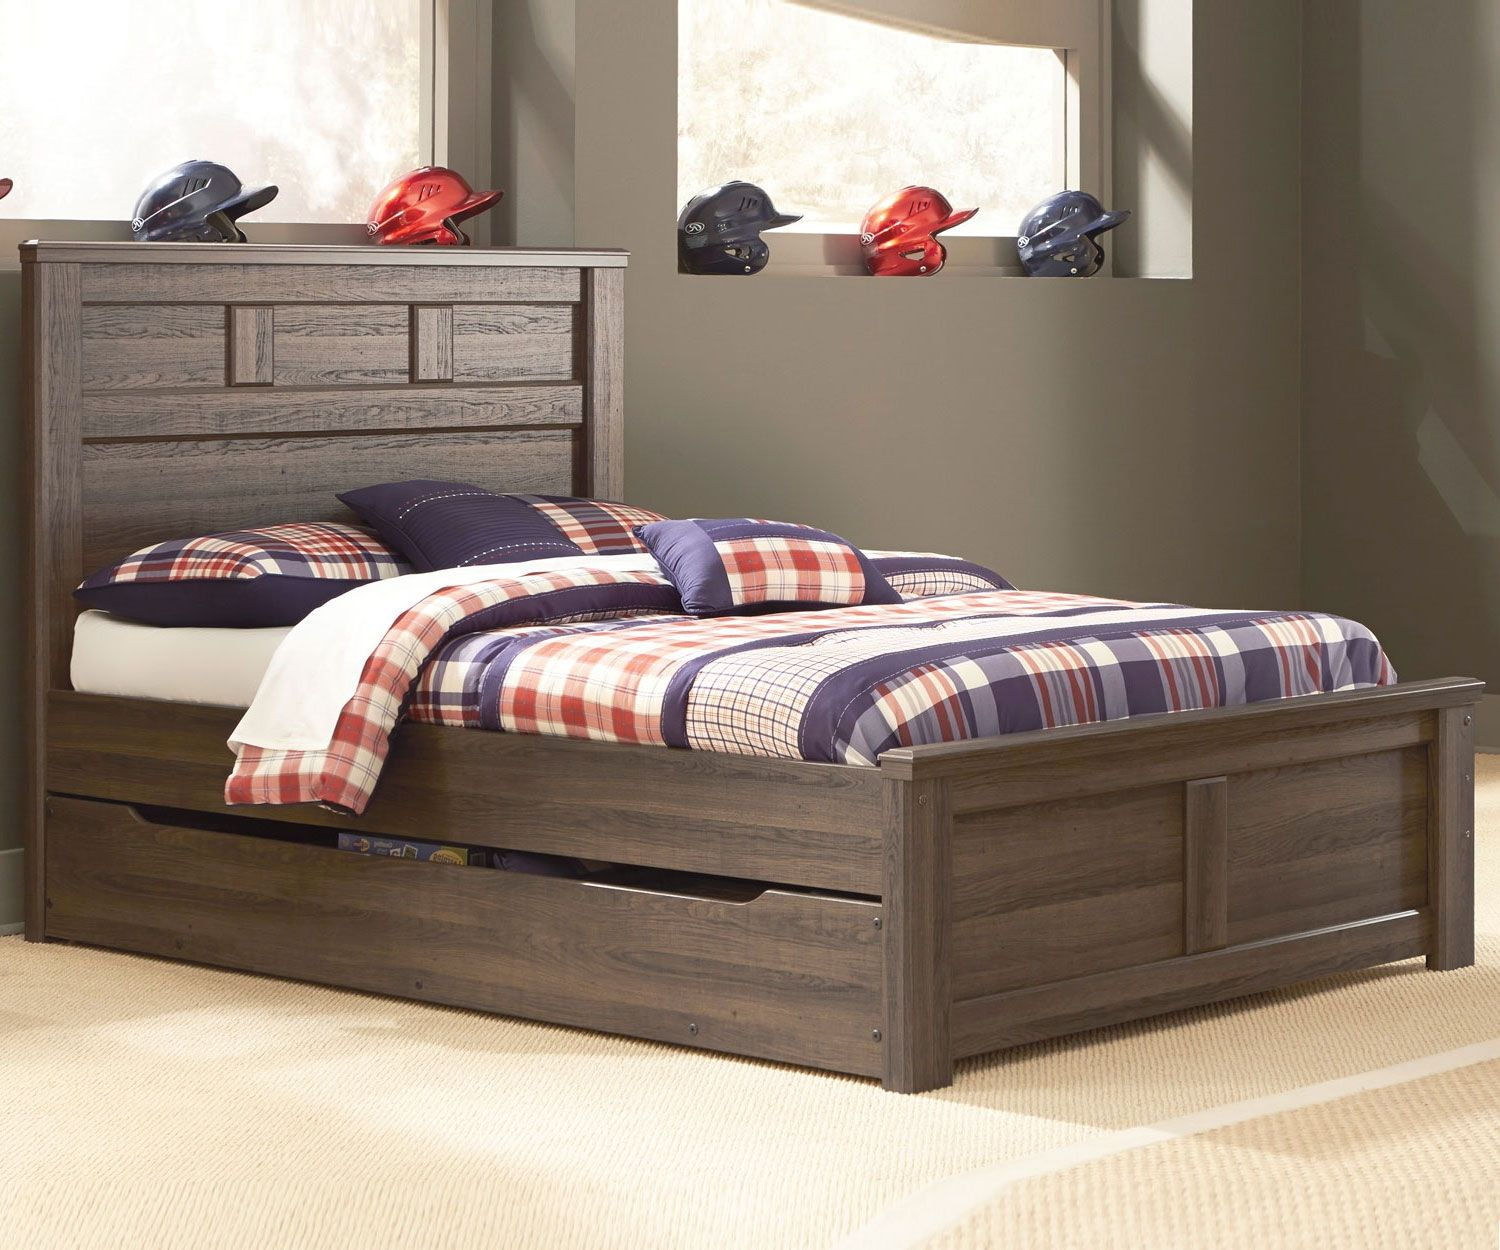 B251 Juararo Trundle Bed